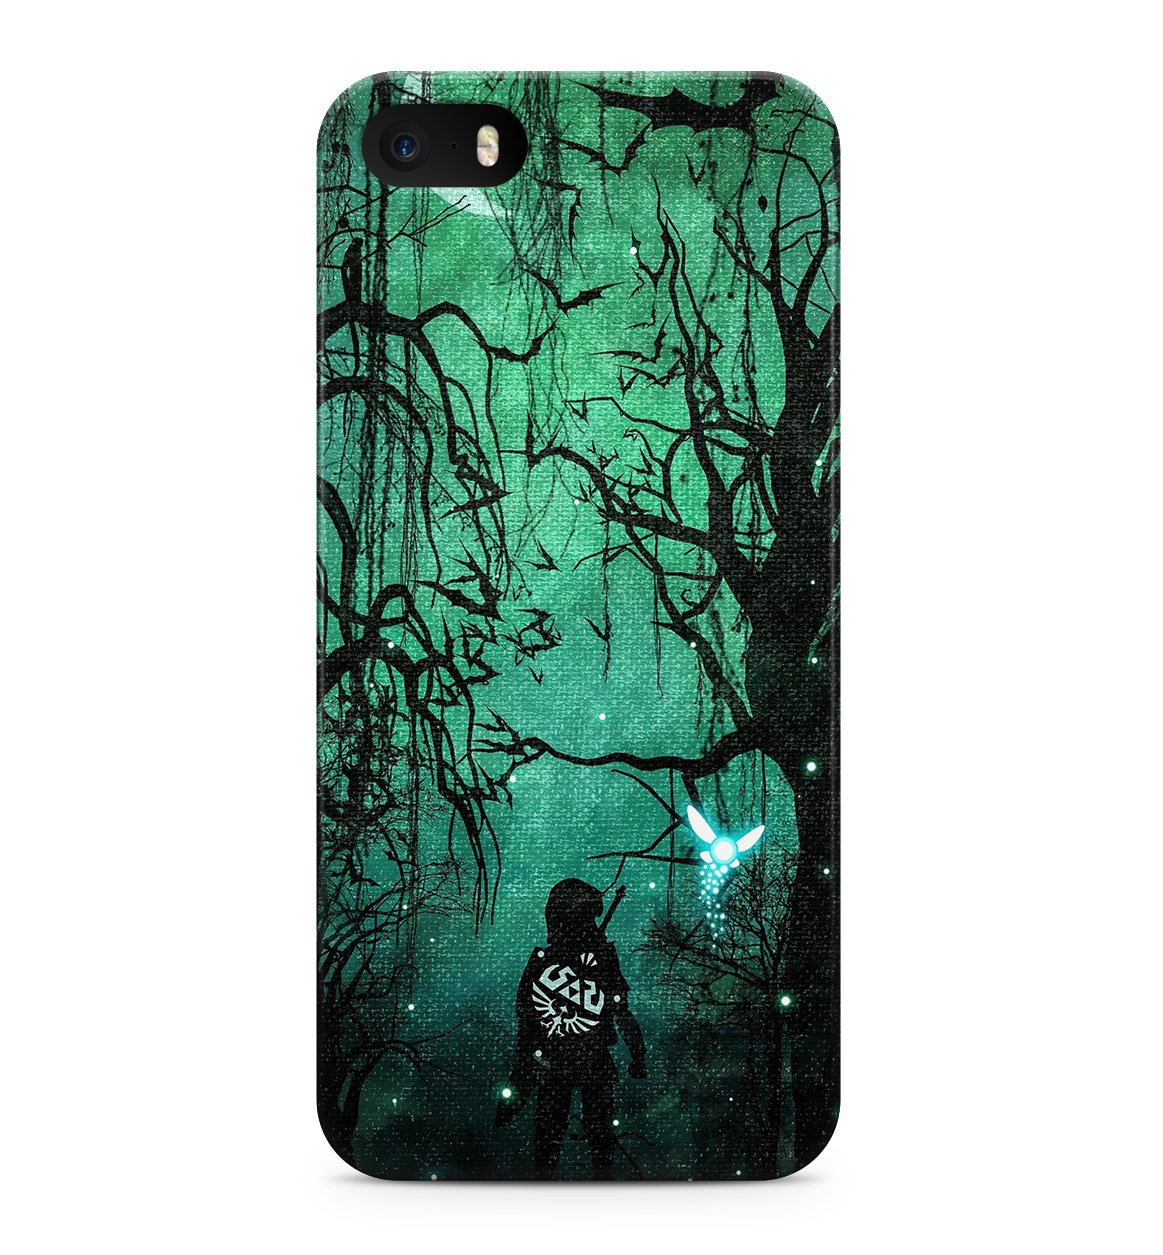 Legends Of Zelda Hard Plastic Snap-On Case Skin Cover For Iphone 5 / Iphone 5S 2